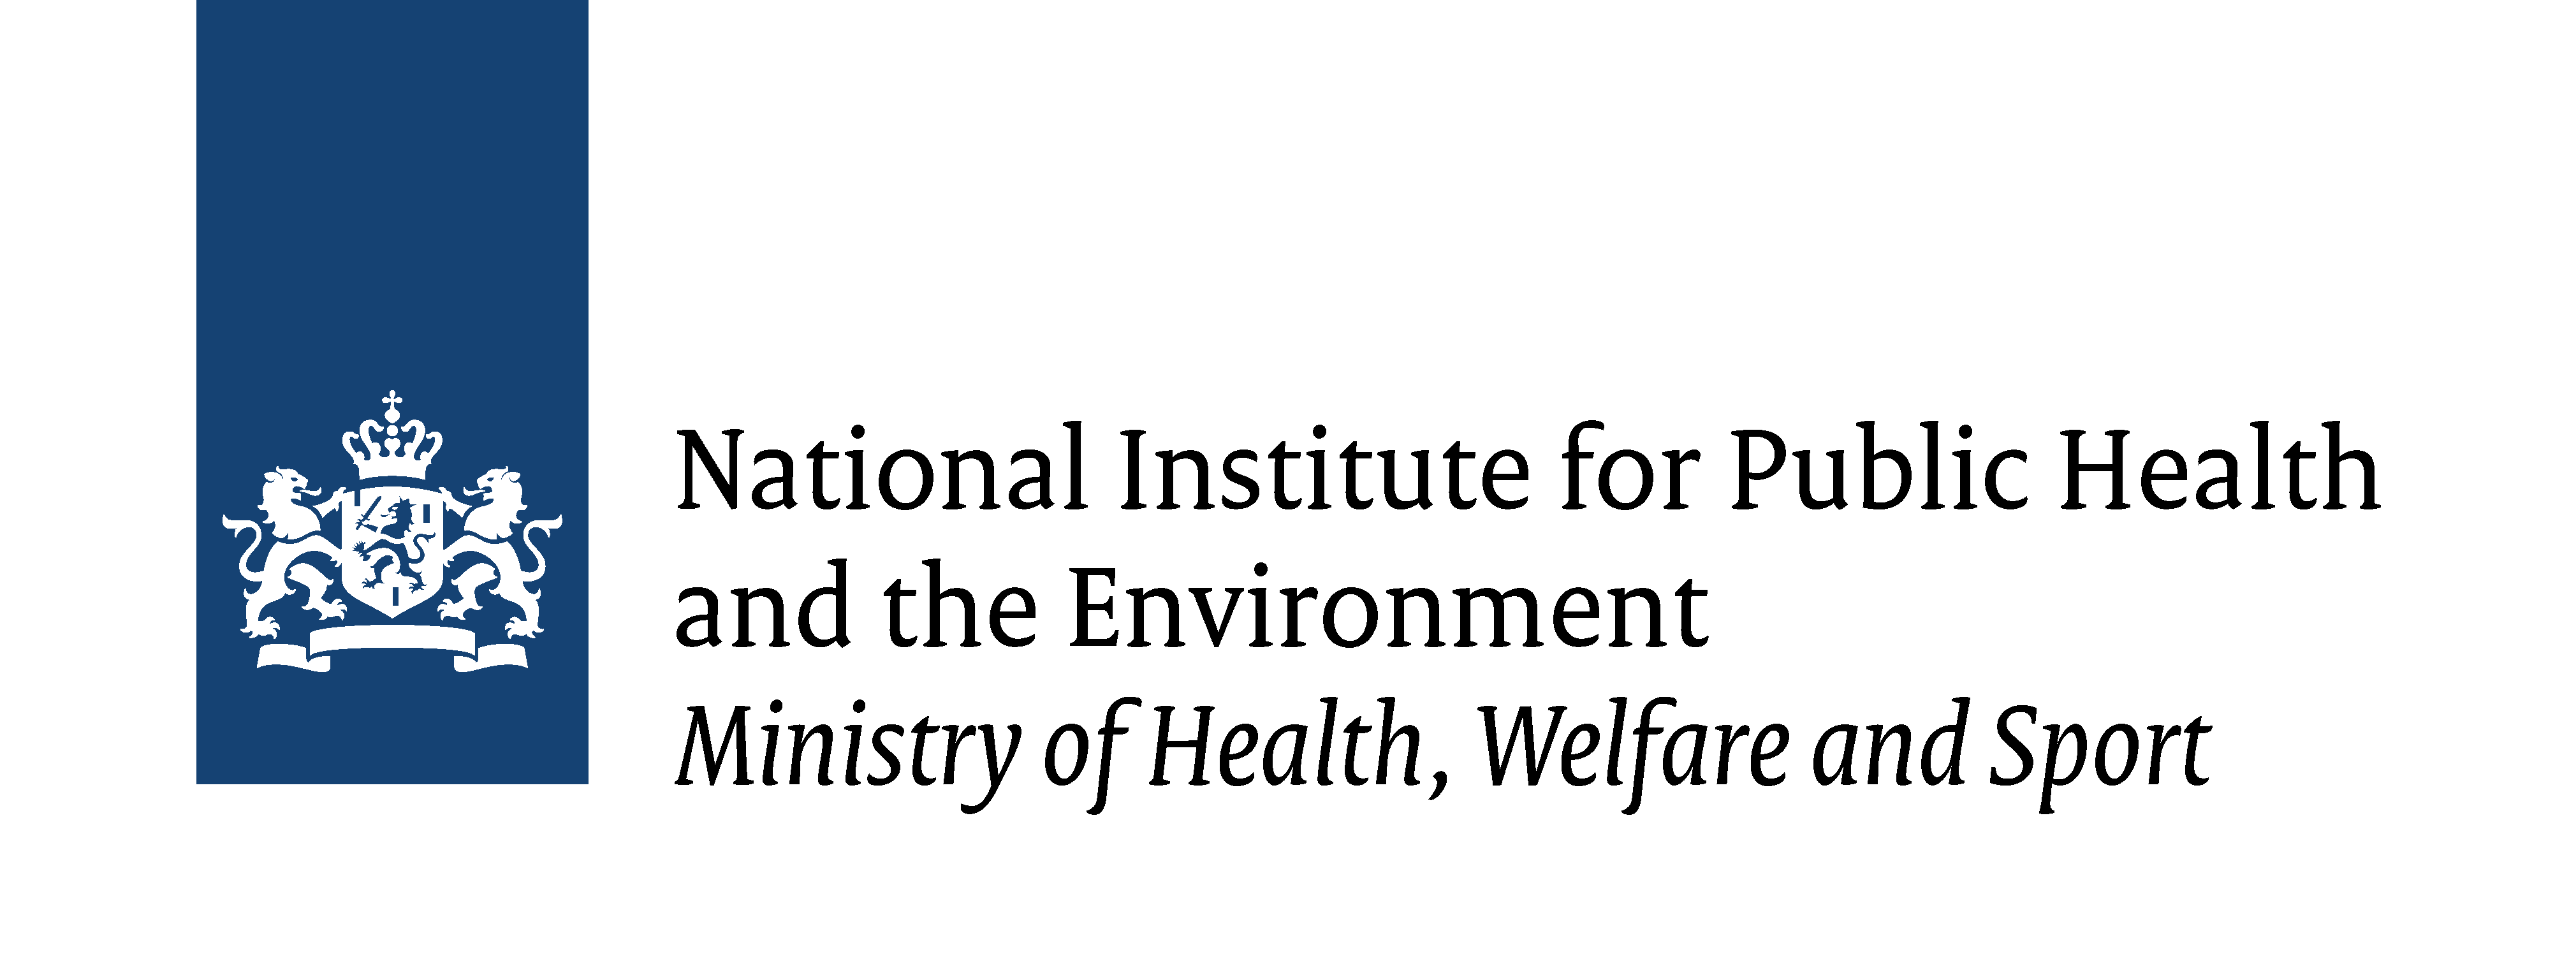 Afbeeldingsresultaat voor national institute for public health and the environment